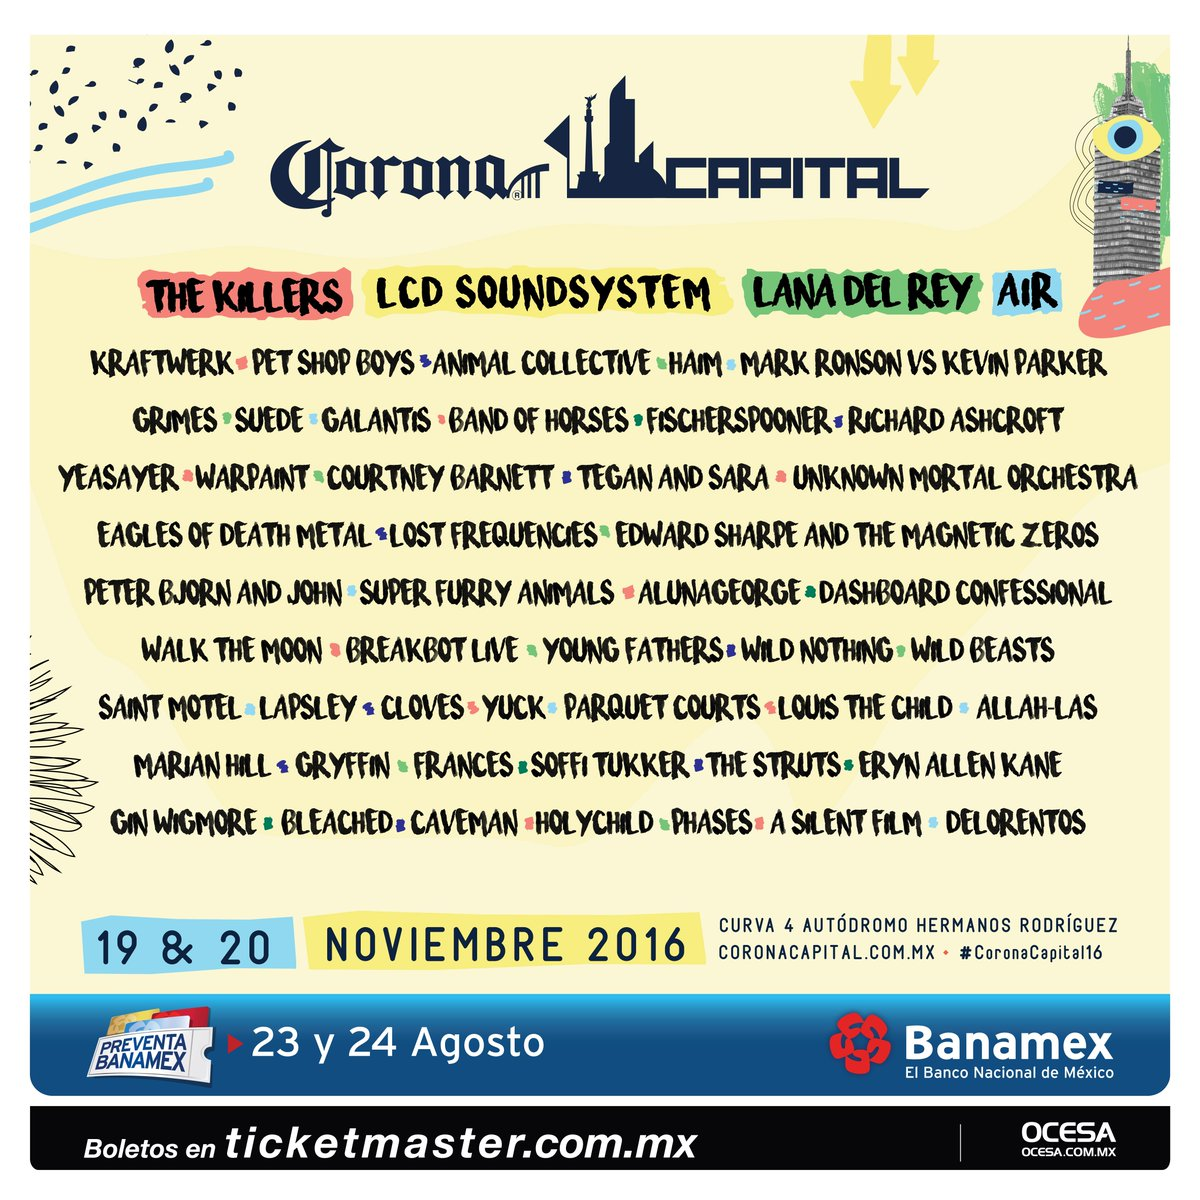 Stoked to announce we're playing @coronacapital Music Festival in Mexico! Tix on sale 8/25 https://t.co/1iHqbGinpt https://t.co/a4SPtsesyM